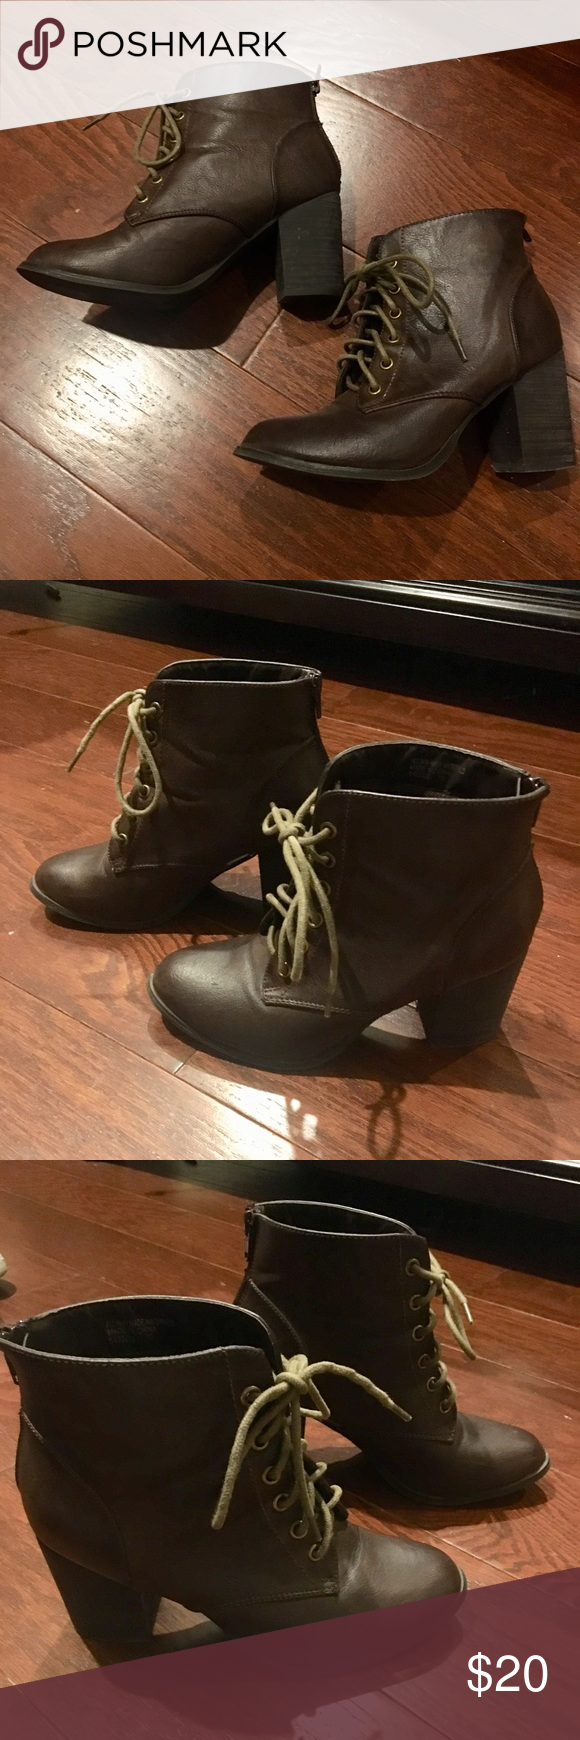 1e415fc749 Brown Diba Lace Up Boots with Block Heels THESE NEED TO GO ASAP 7 (fits